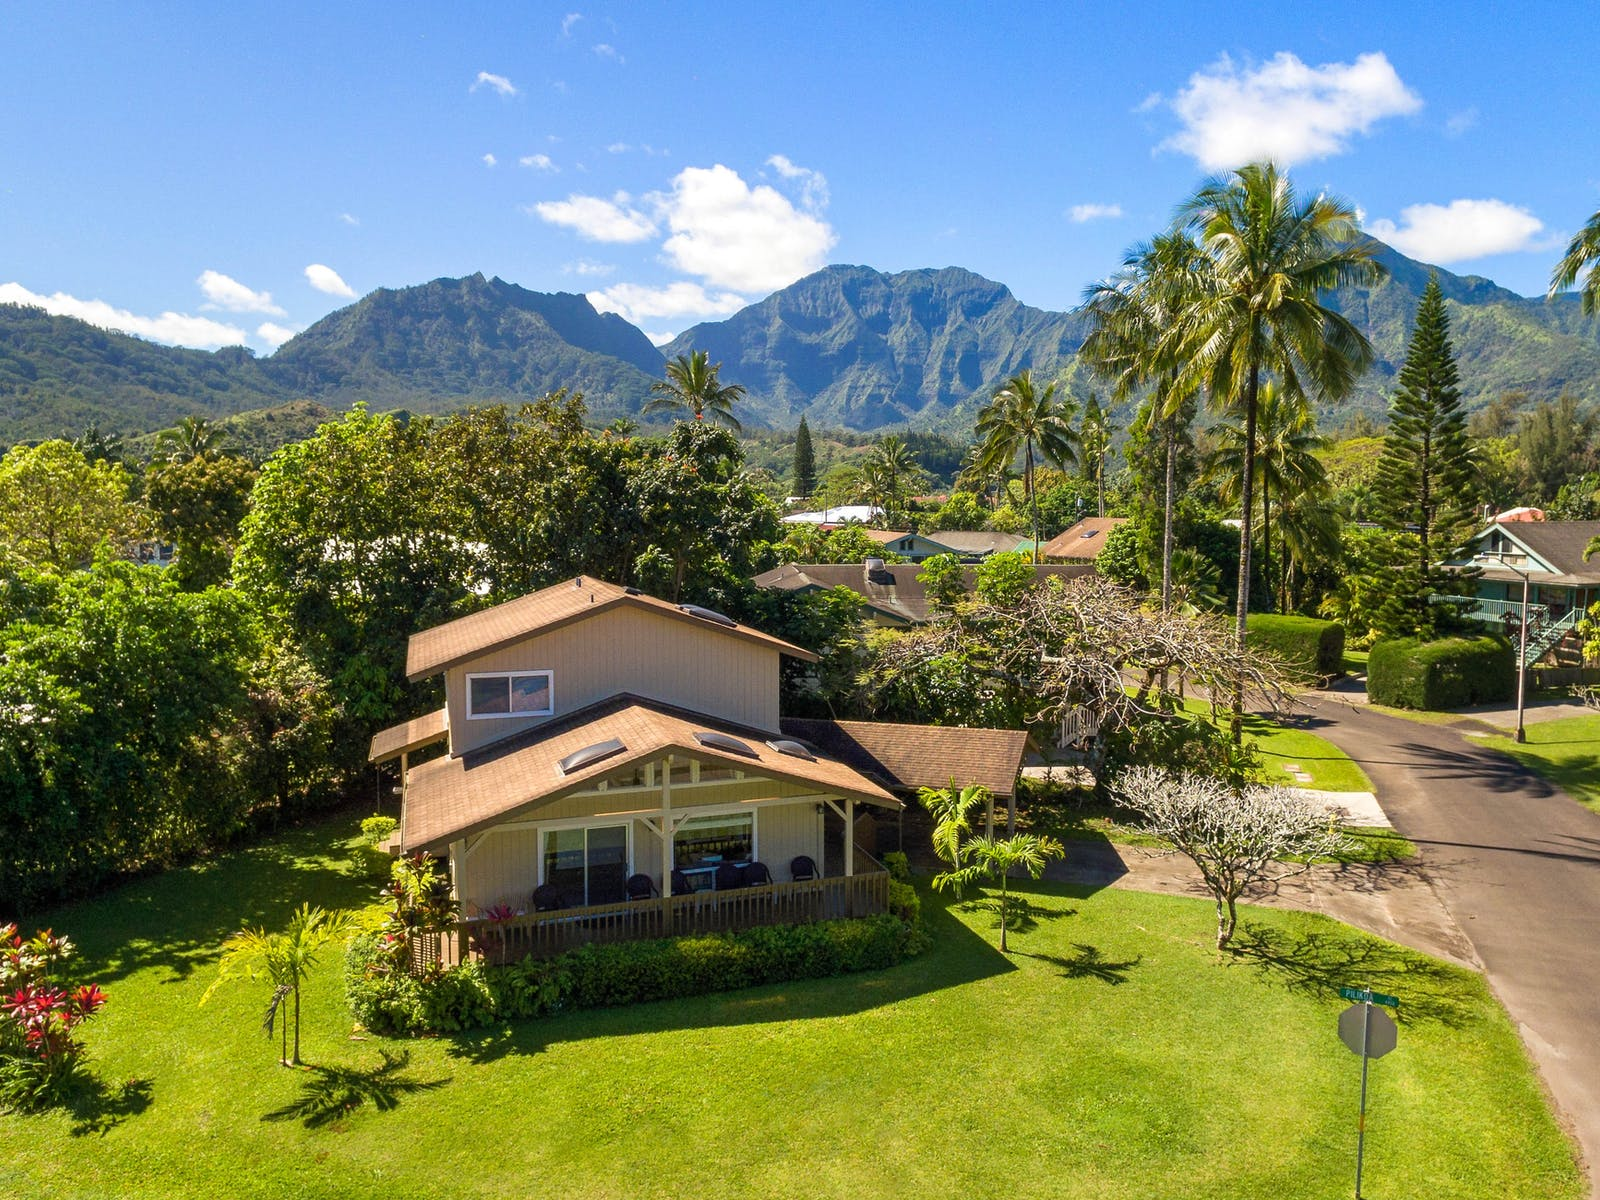 Vacation home found in Hanalei, HI